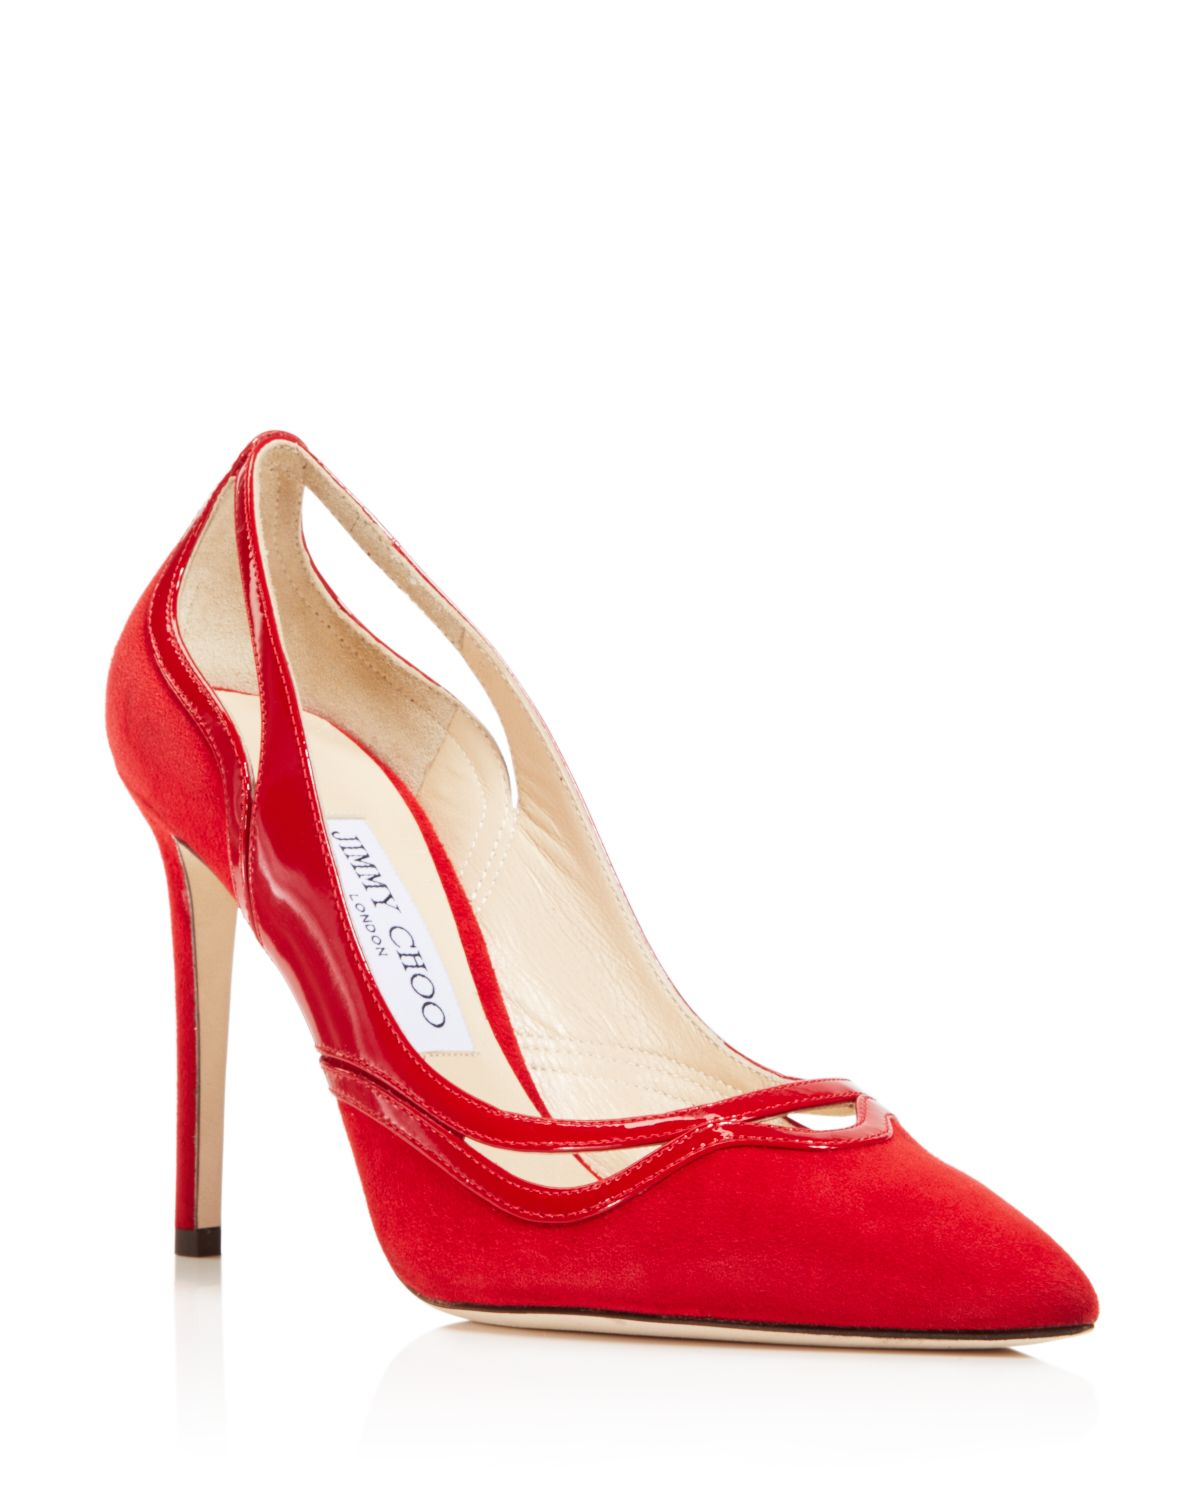 Jimmy choo Women's Hickory 100 Suede & Patent Leather Cutout High-Heel Pumps